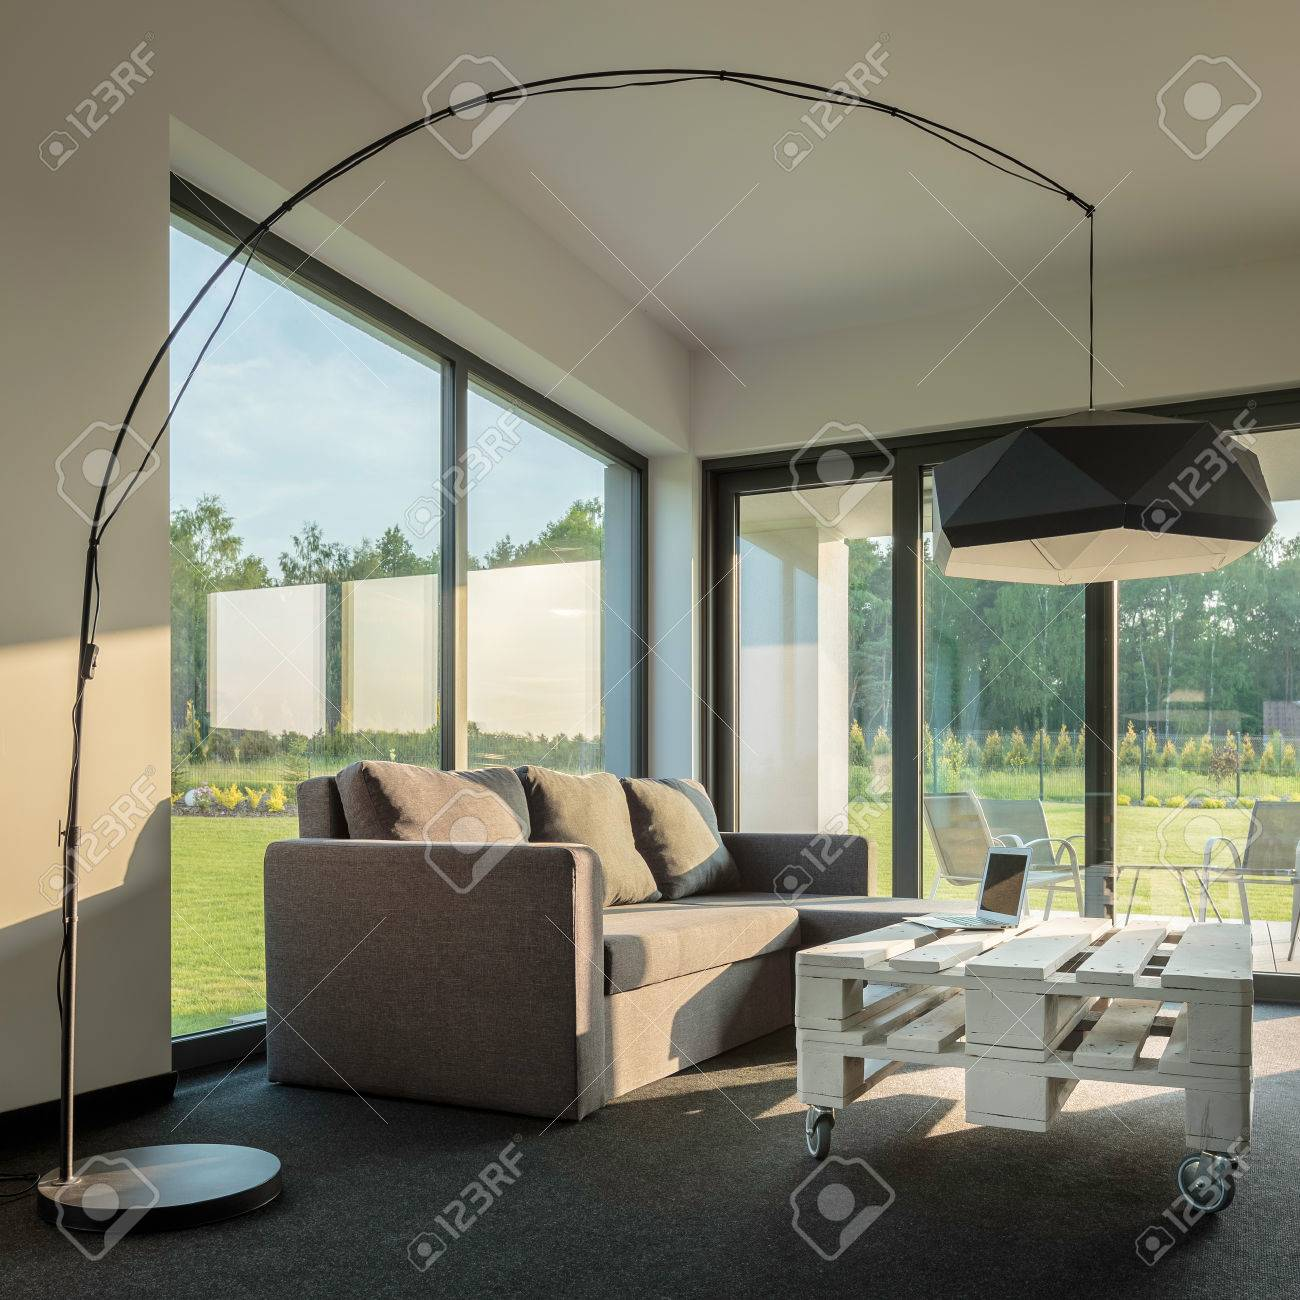 Cozy Living Room With Garden View New Floor Lamp Sofa And White